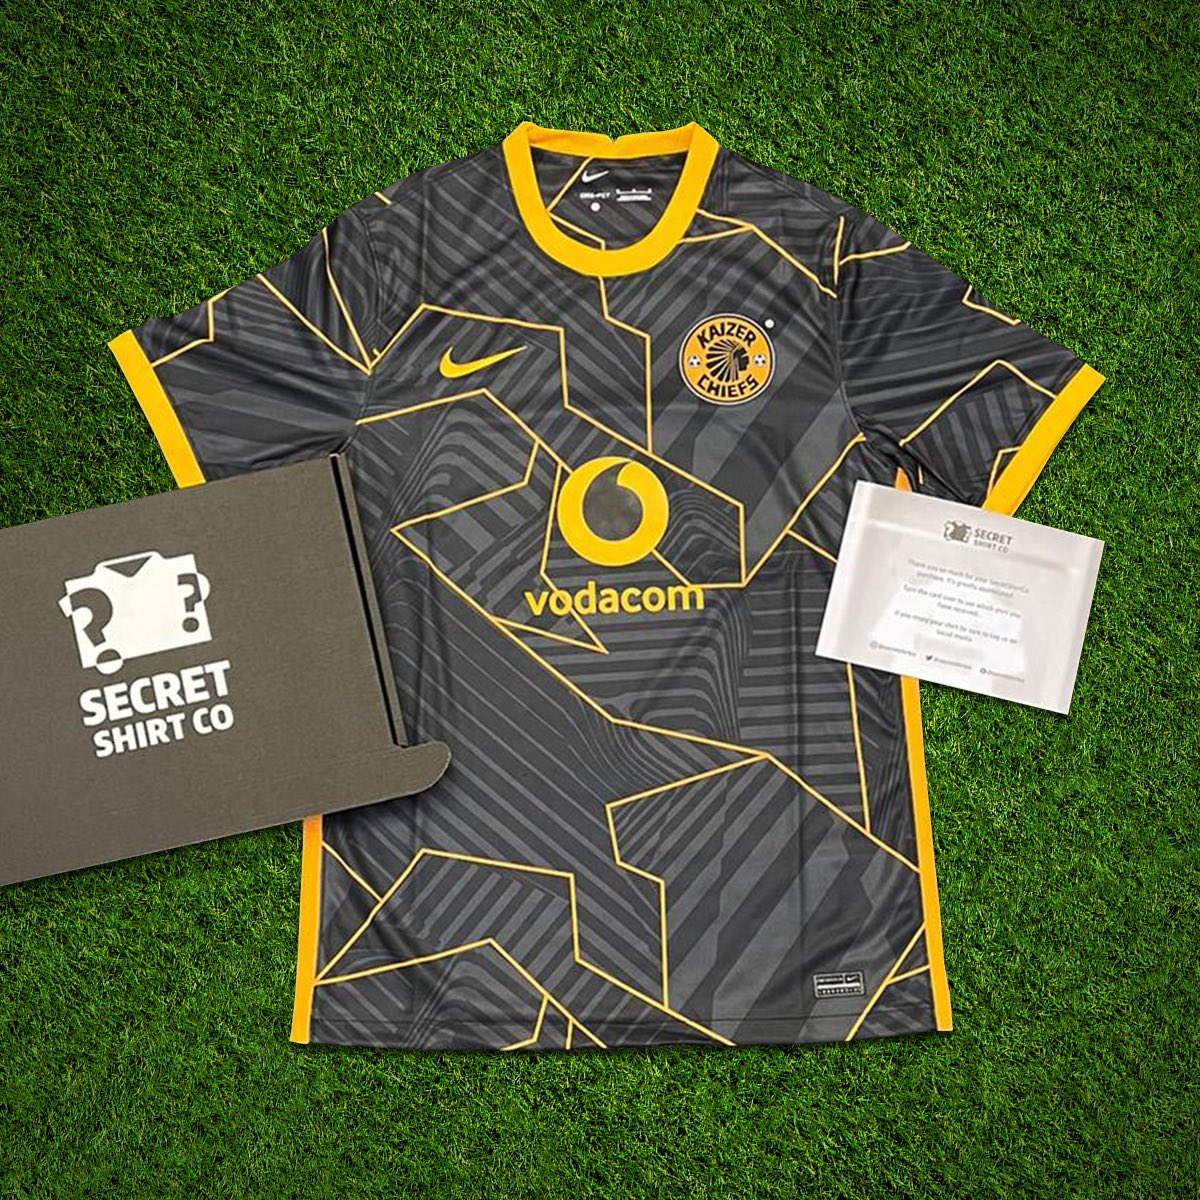 If Cristiano Ronaldo plays against Newcastle today we'll giveaway a SecretShirt.co box 📦 To enter 👇 🔄 Retweet this tweet 🤝 Follow us Good luck!